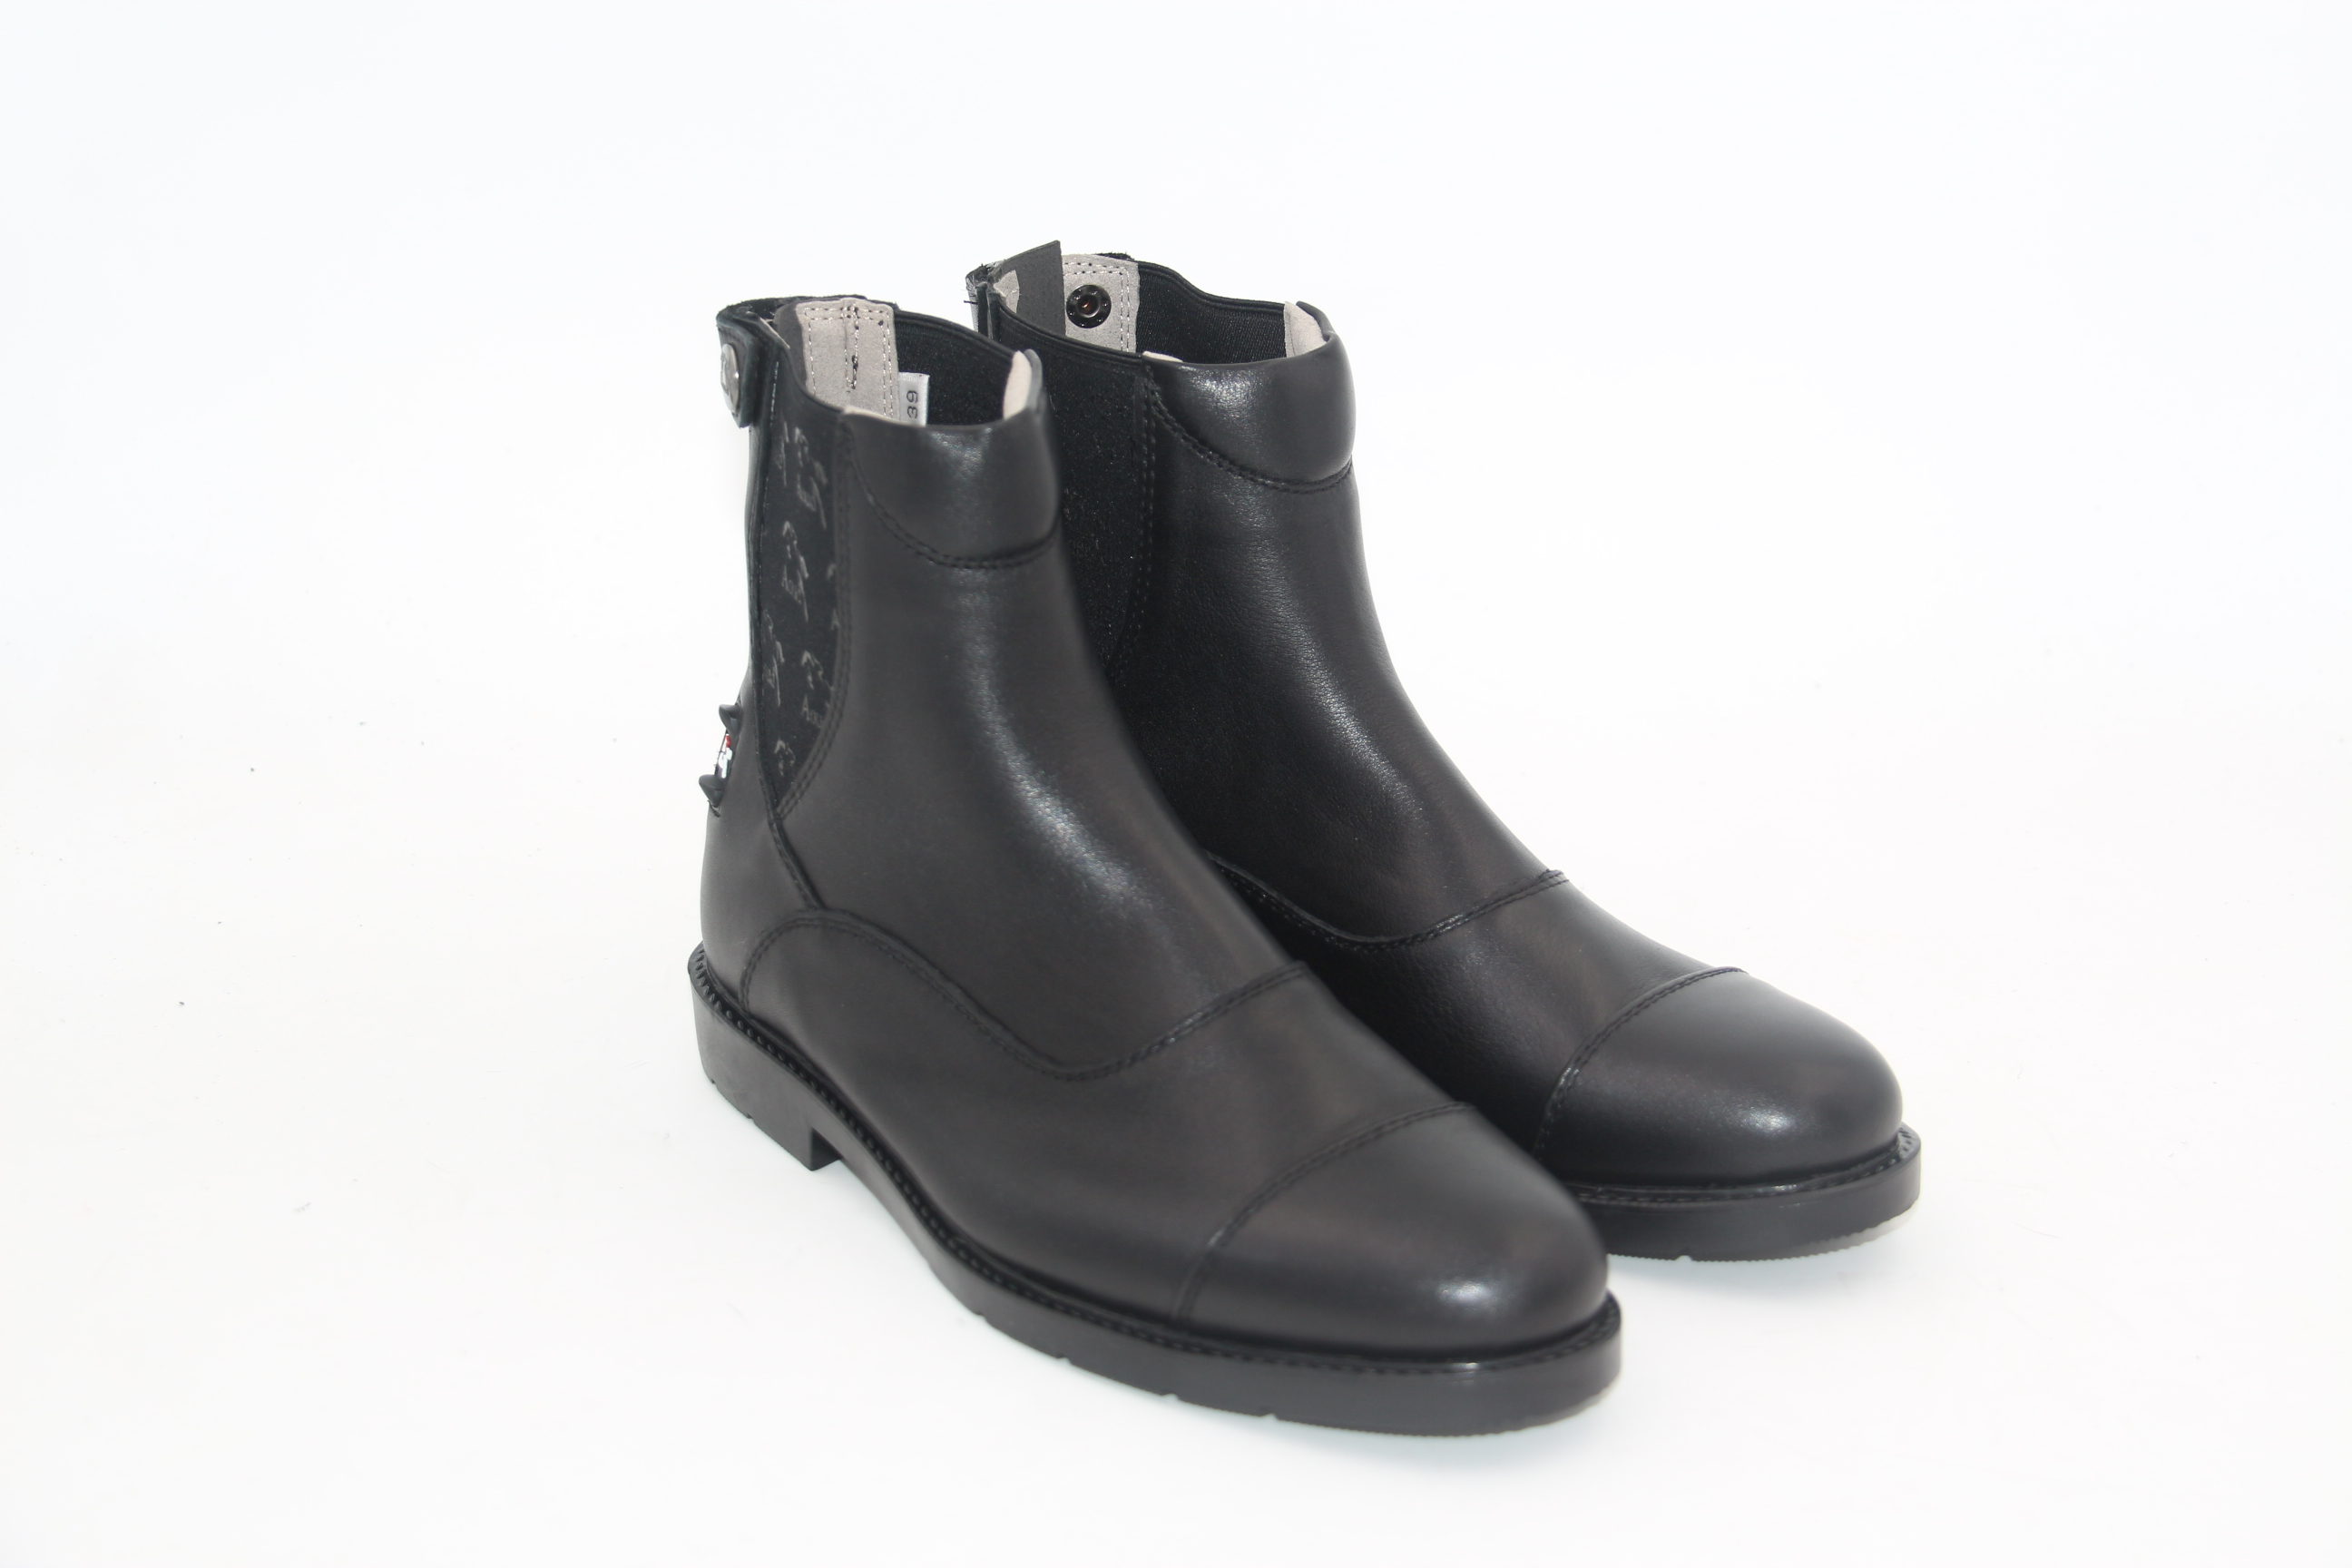 Aoud Saddley Horse Riding Boots Full Leather Equestrian Boots High Quality Back Zipper Shoes For Men Women And Children